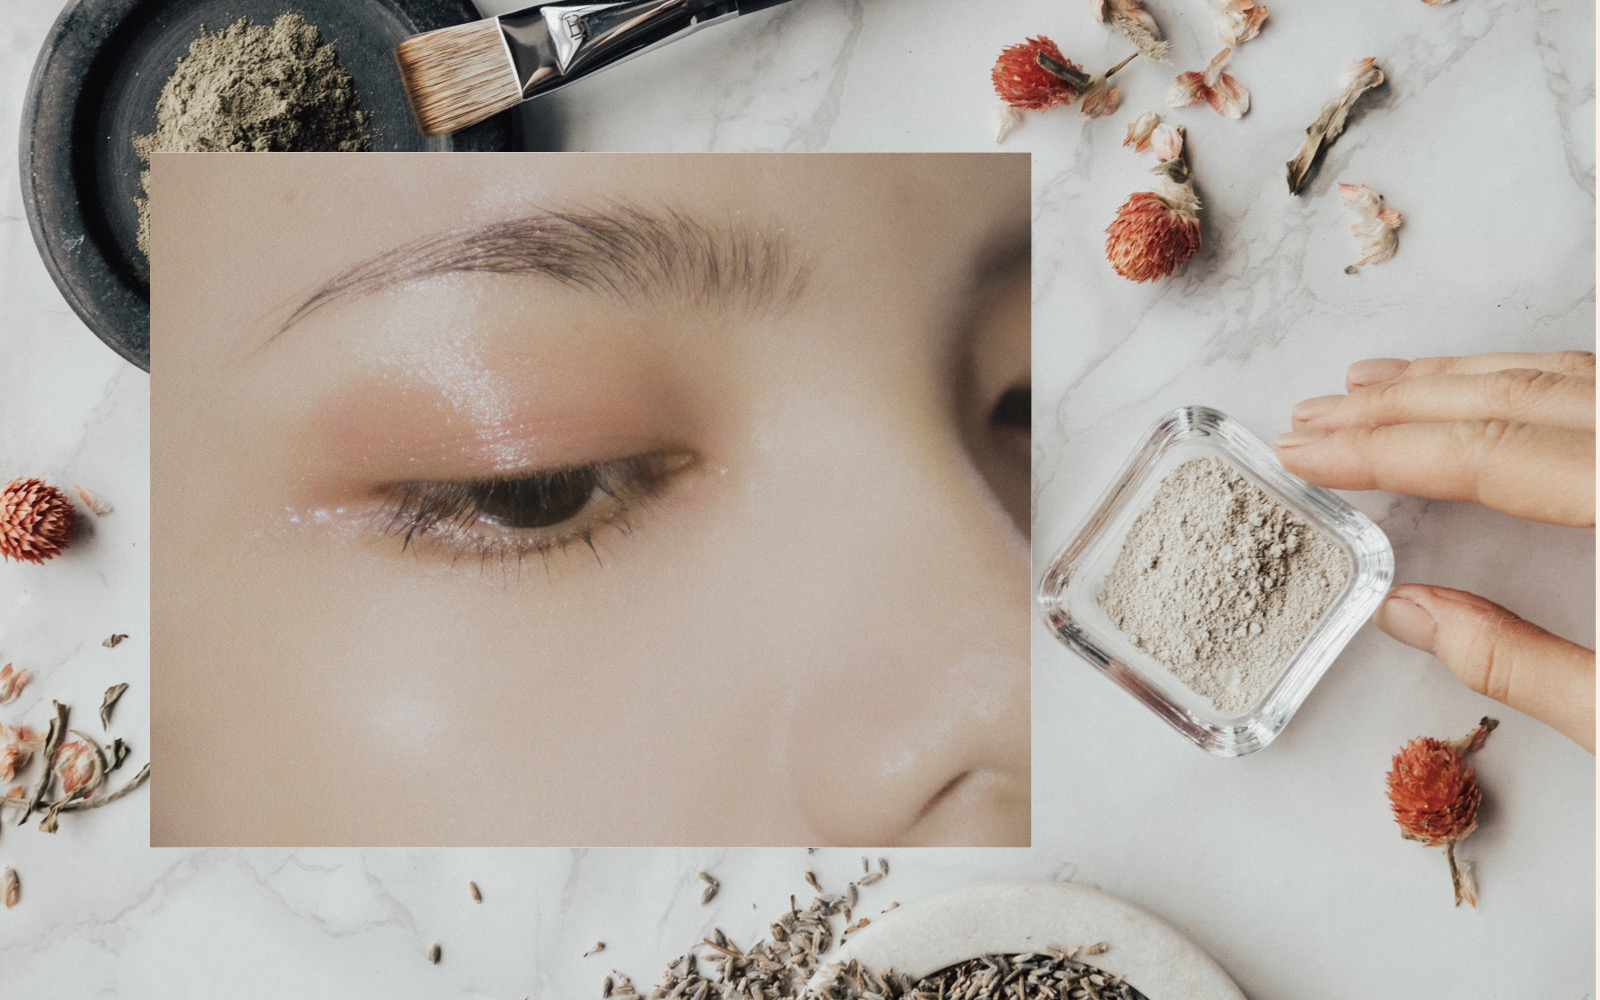 A quick 'clean beauty' breakdown